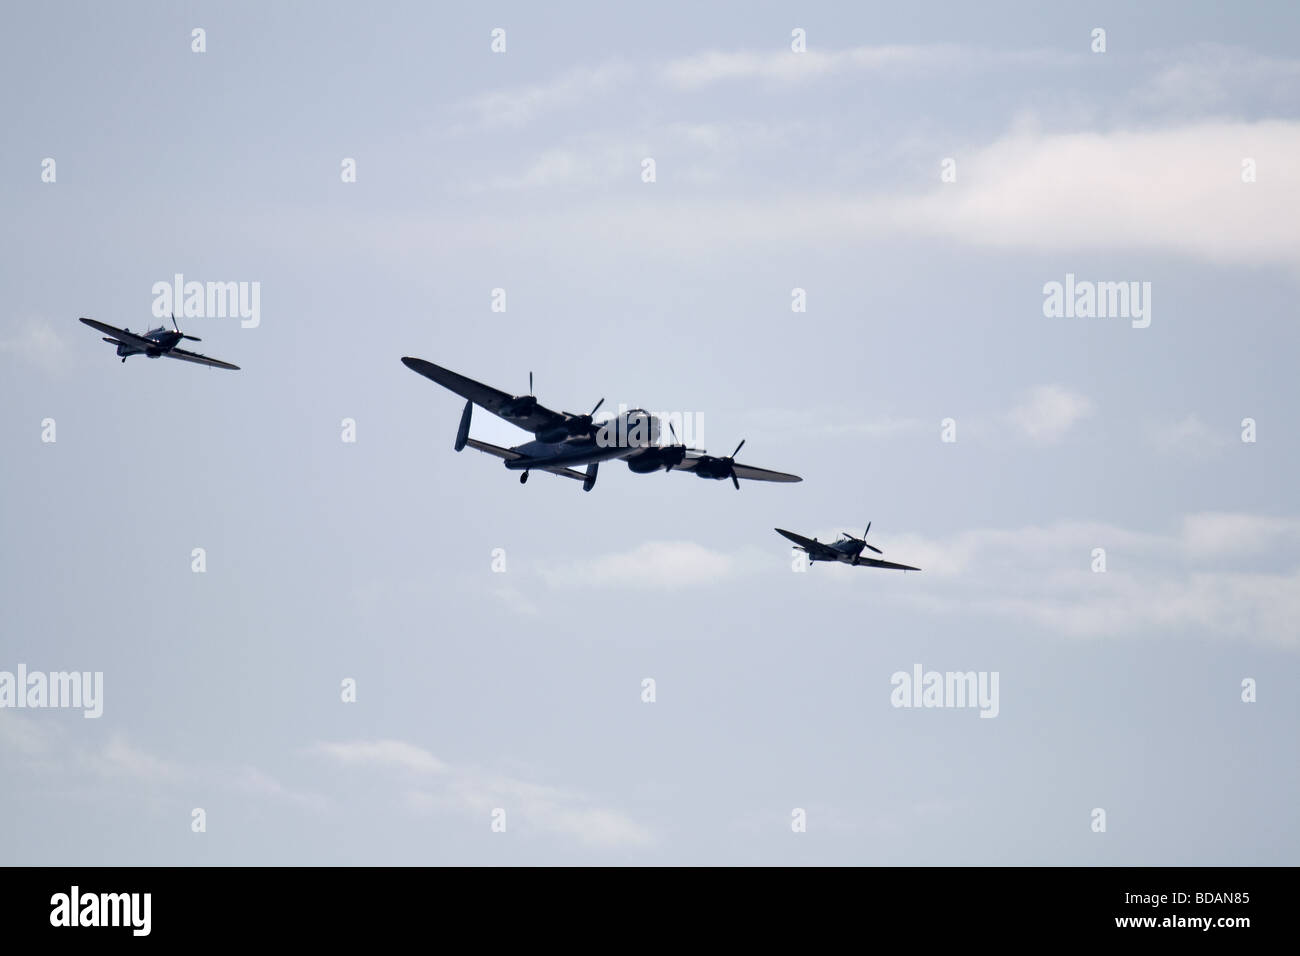 Spitfire Hurricane and Lancaster bomber at Blackpool Airshow 2009 - Stock Image